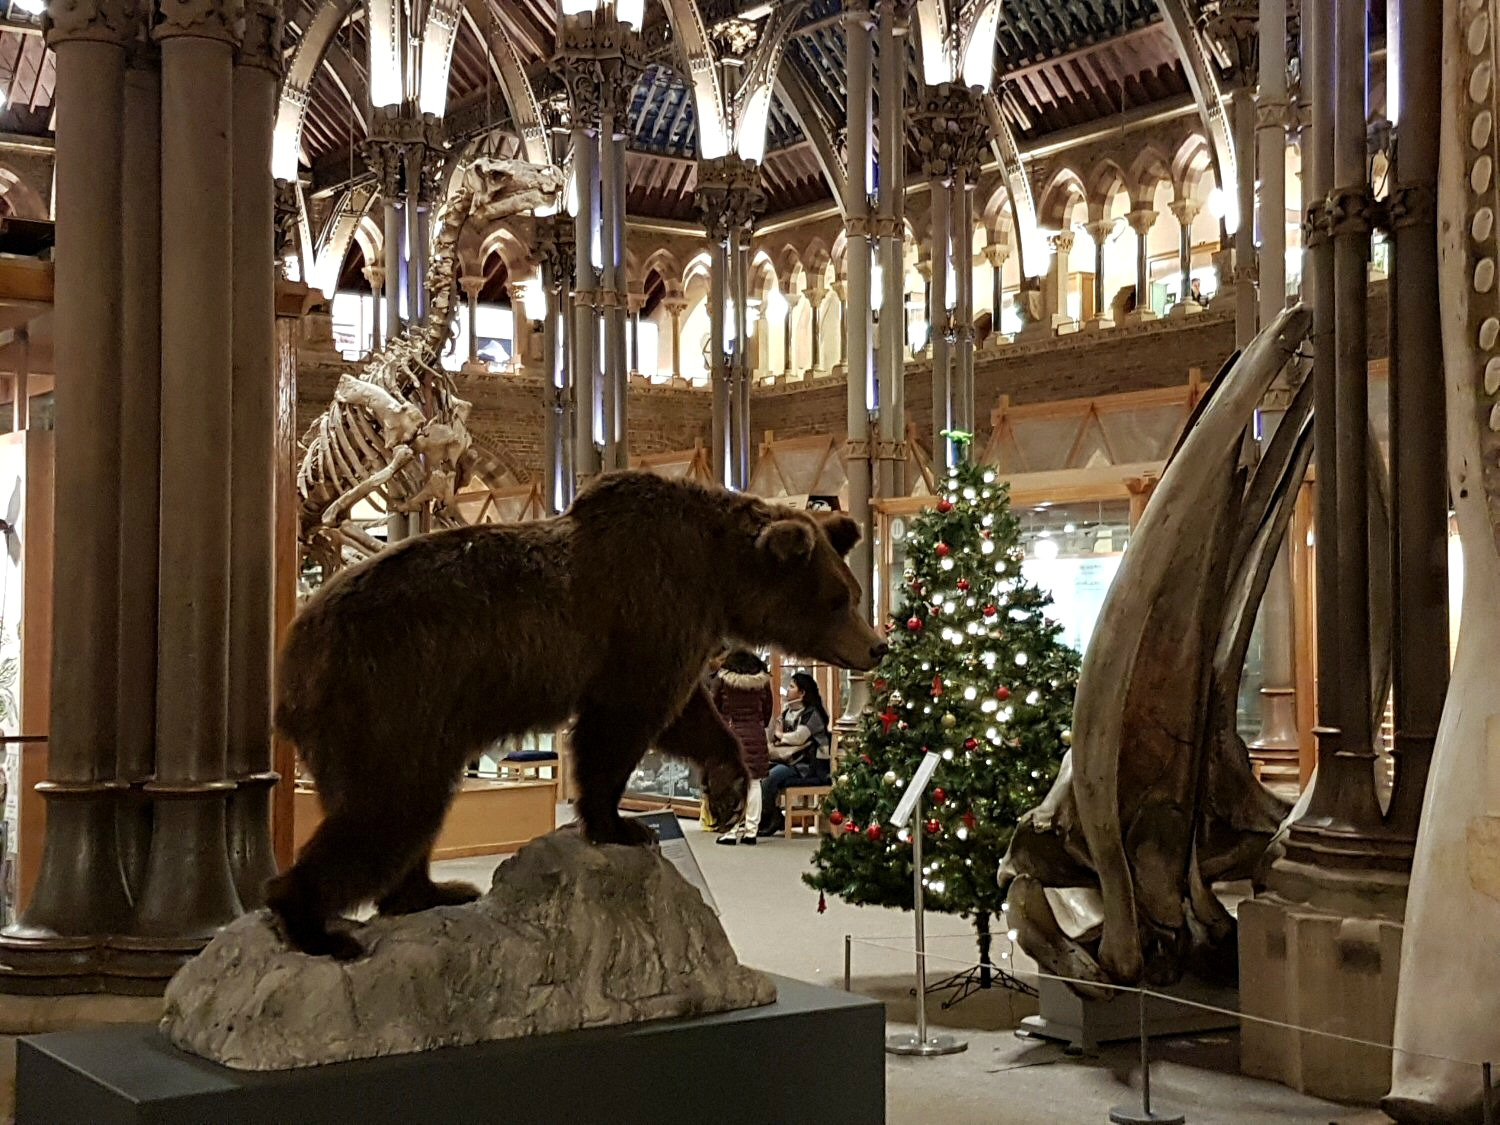 Brown bear by a whale jawbone and Christmas tree at the entrance to the Oxford University Museum of Natural History. Our Oxford University natural history museum day out